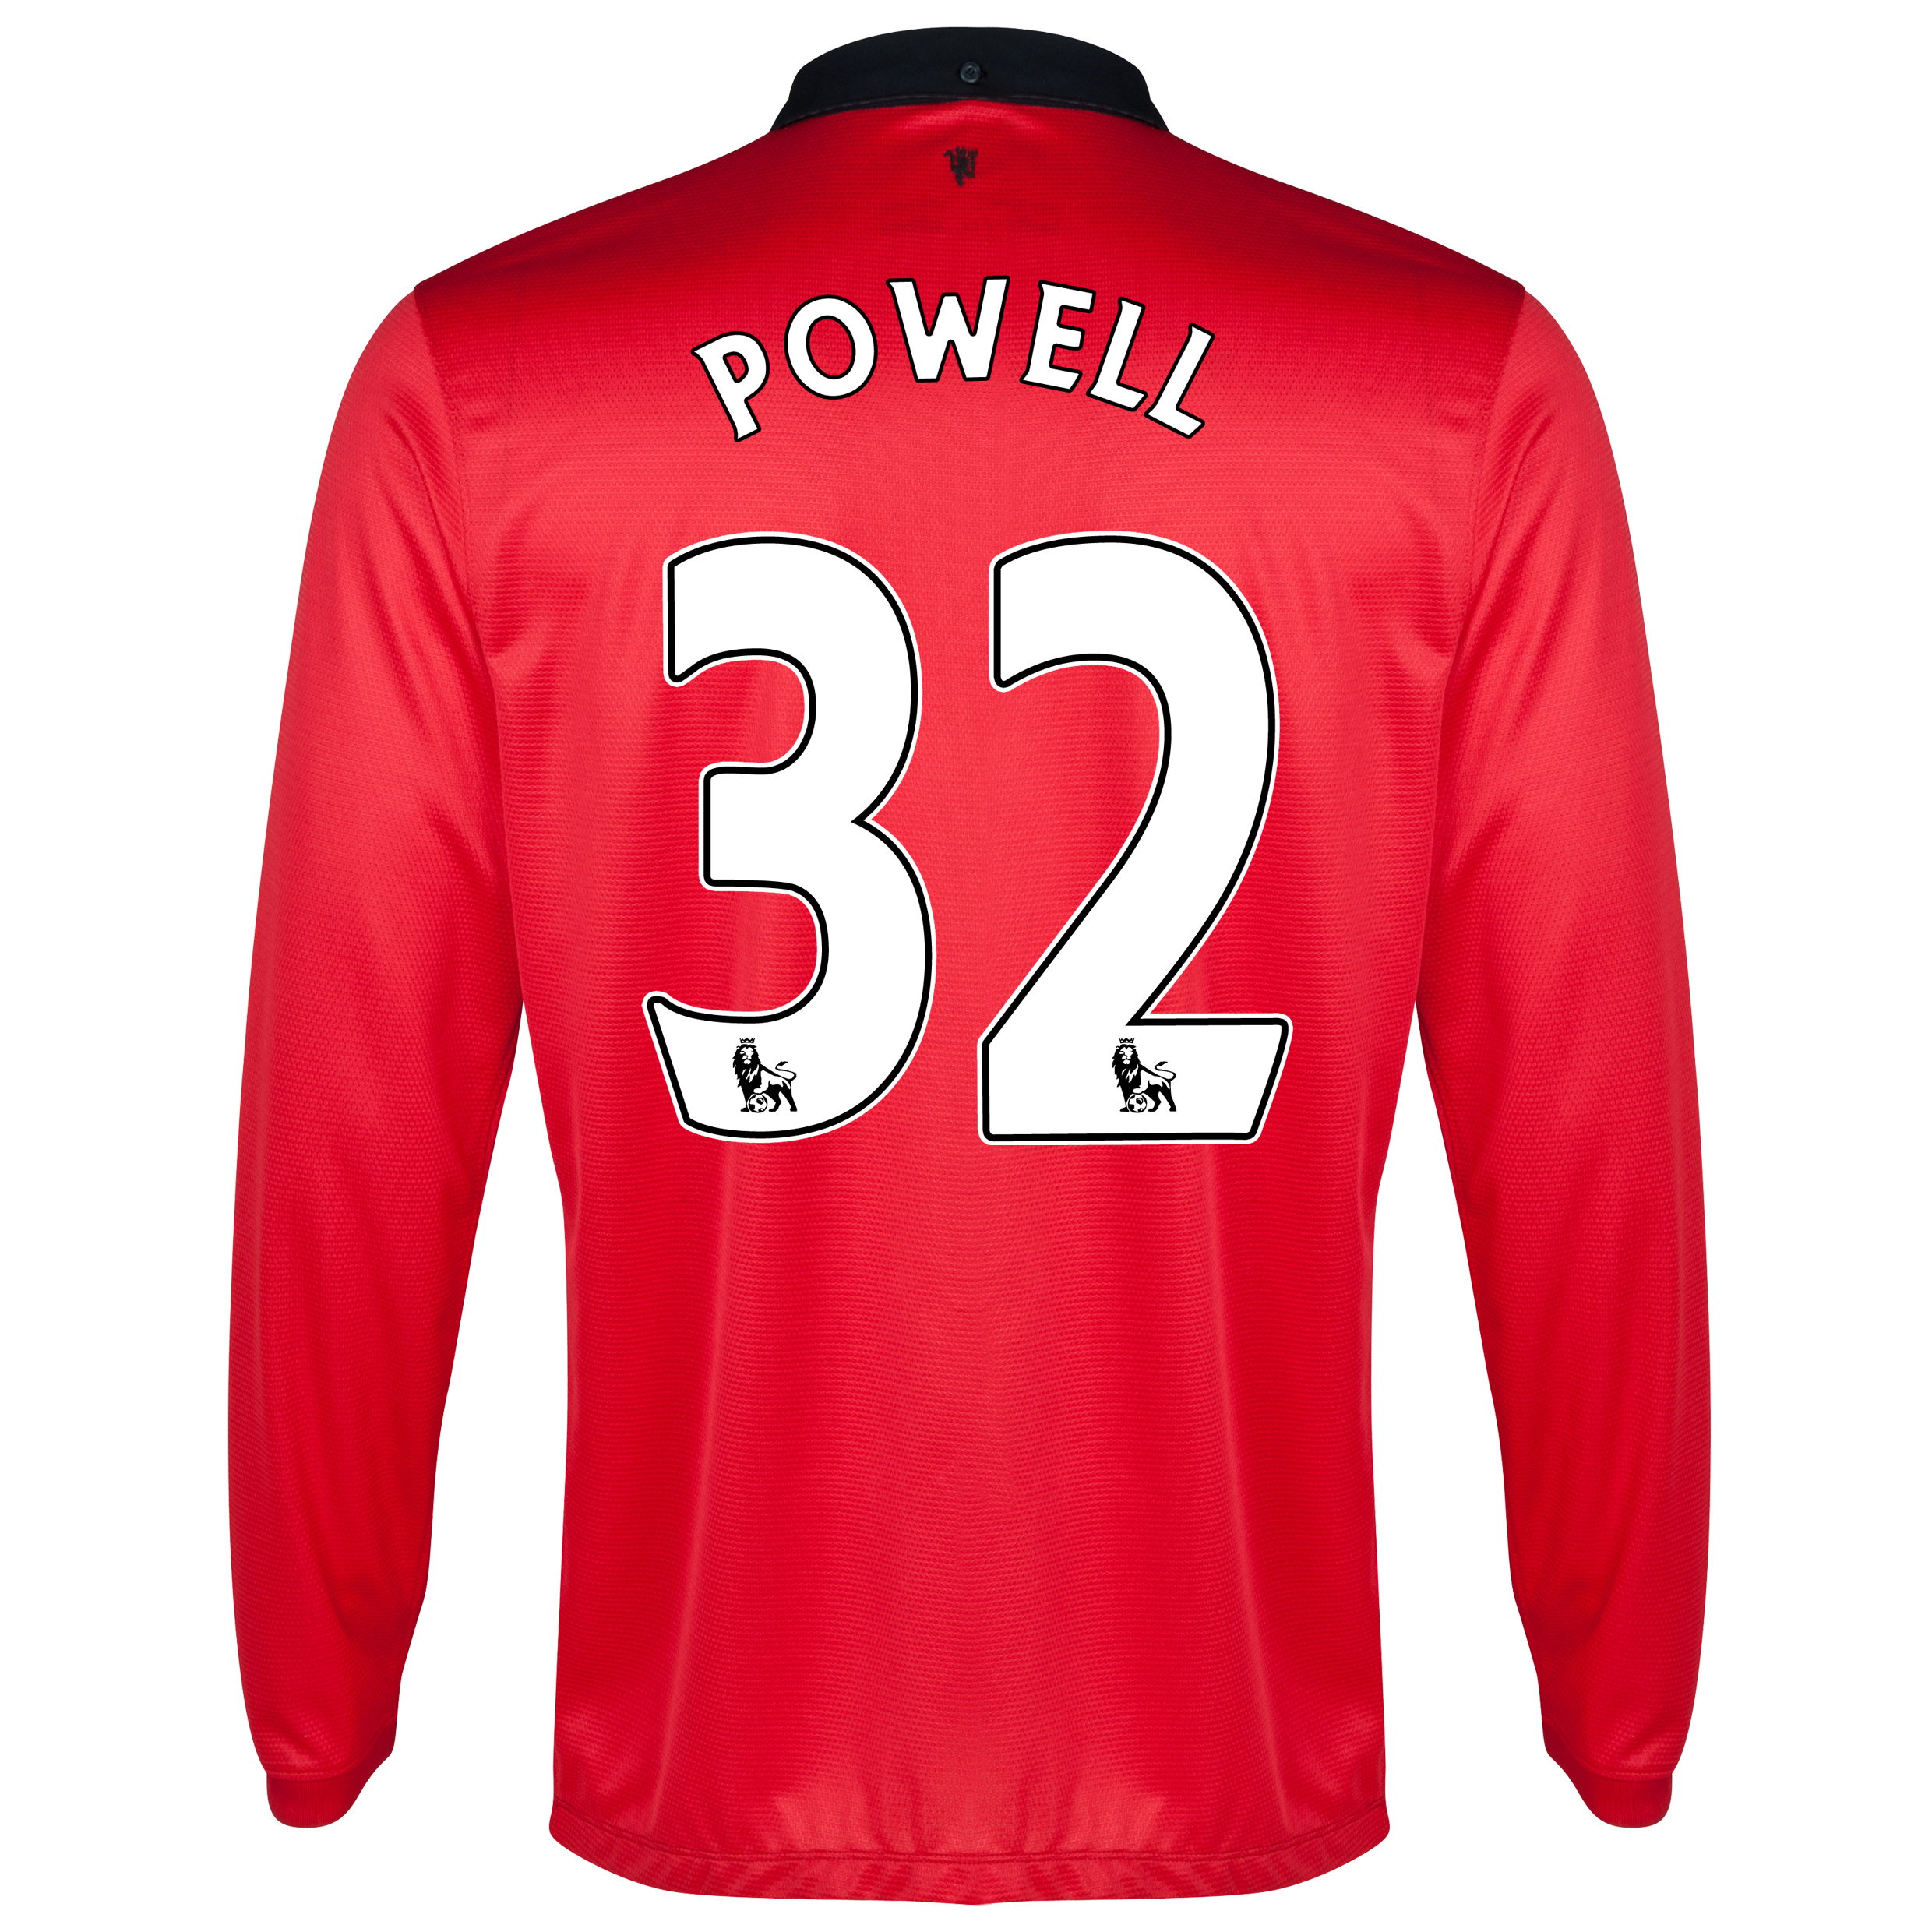 Manchester United Home Shirt 2013/14 - Long Sleeved - Kids with Powell 25 printing